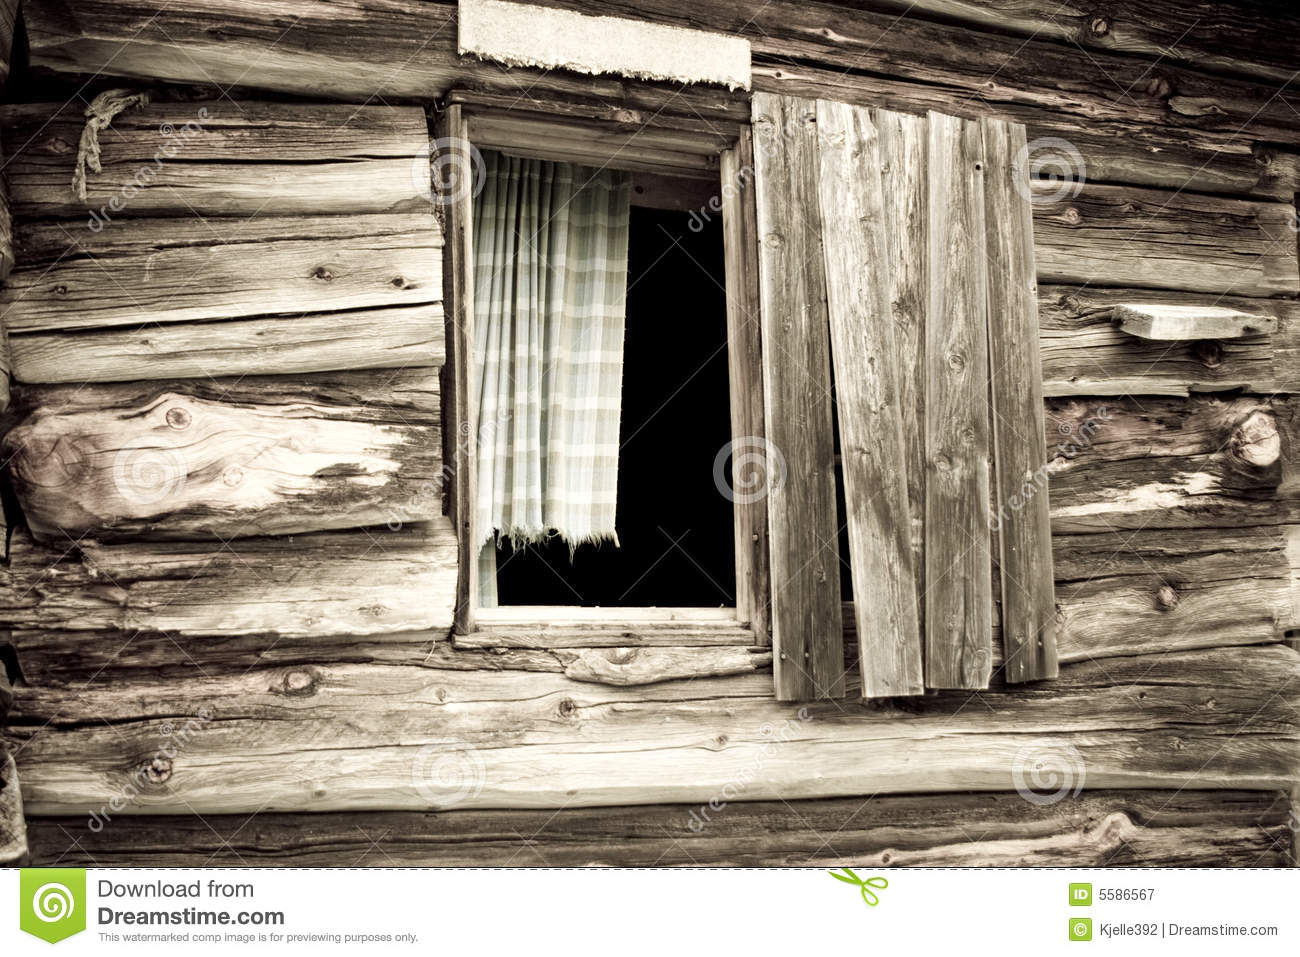 Cabins Out Of Old Windows : Old cabins window stock image of glass panel wood